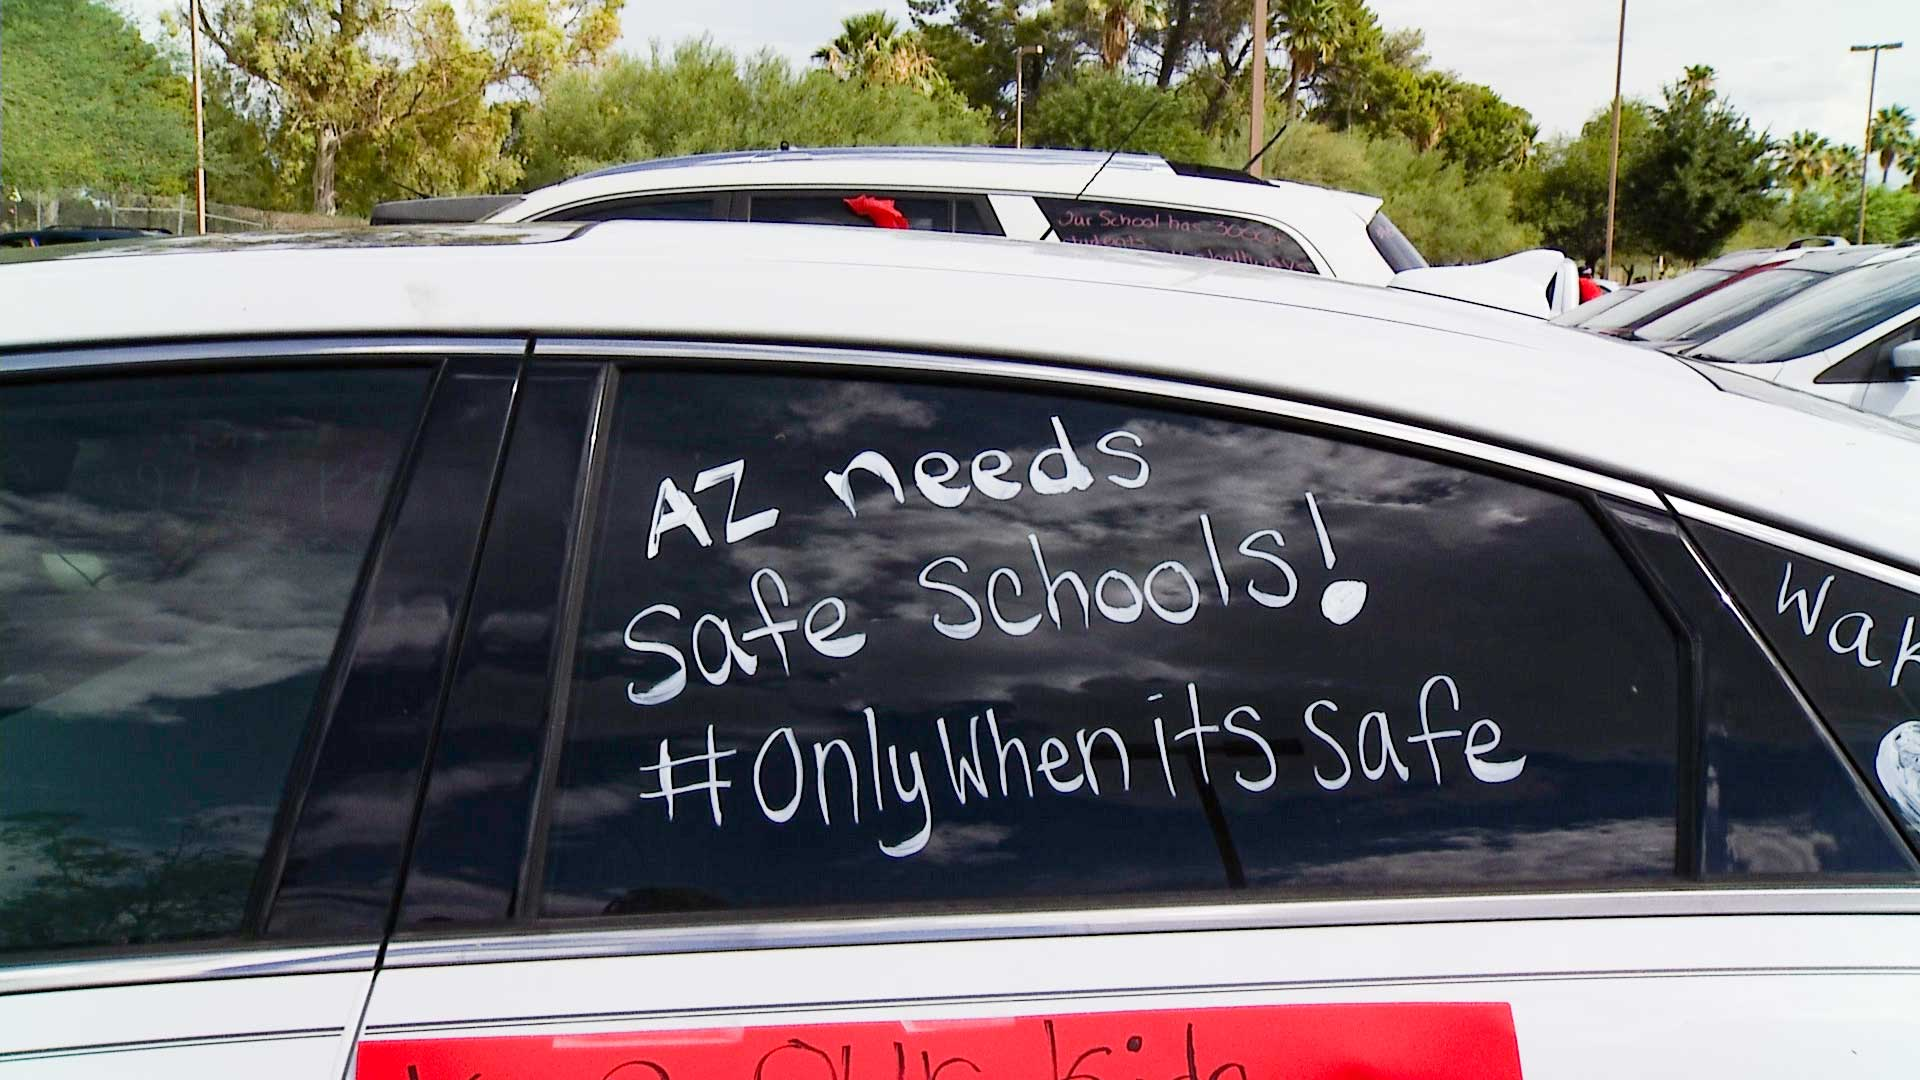 Tucson teachers led a car rally on July 22, 2020 to protest reopening schools without sufficient state guidance and safety benchmarks.